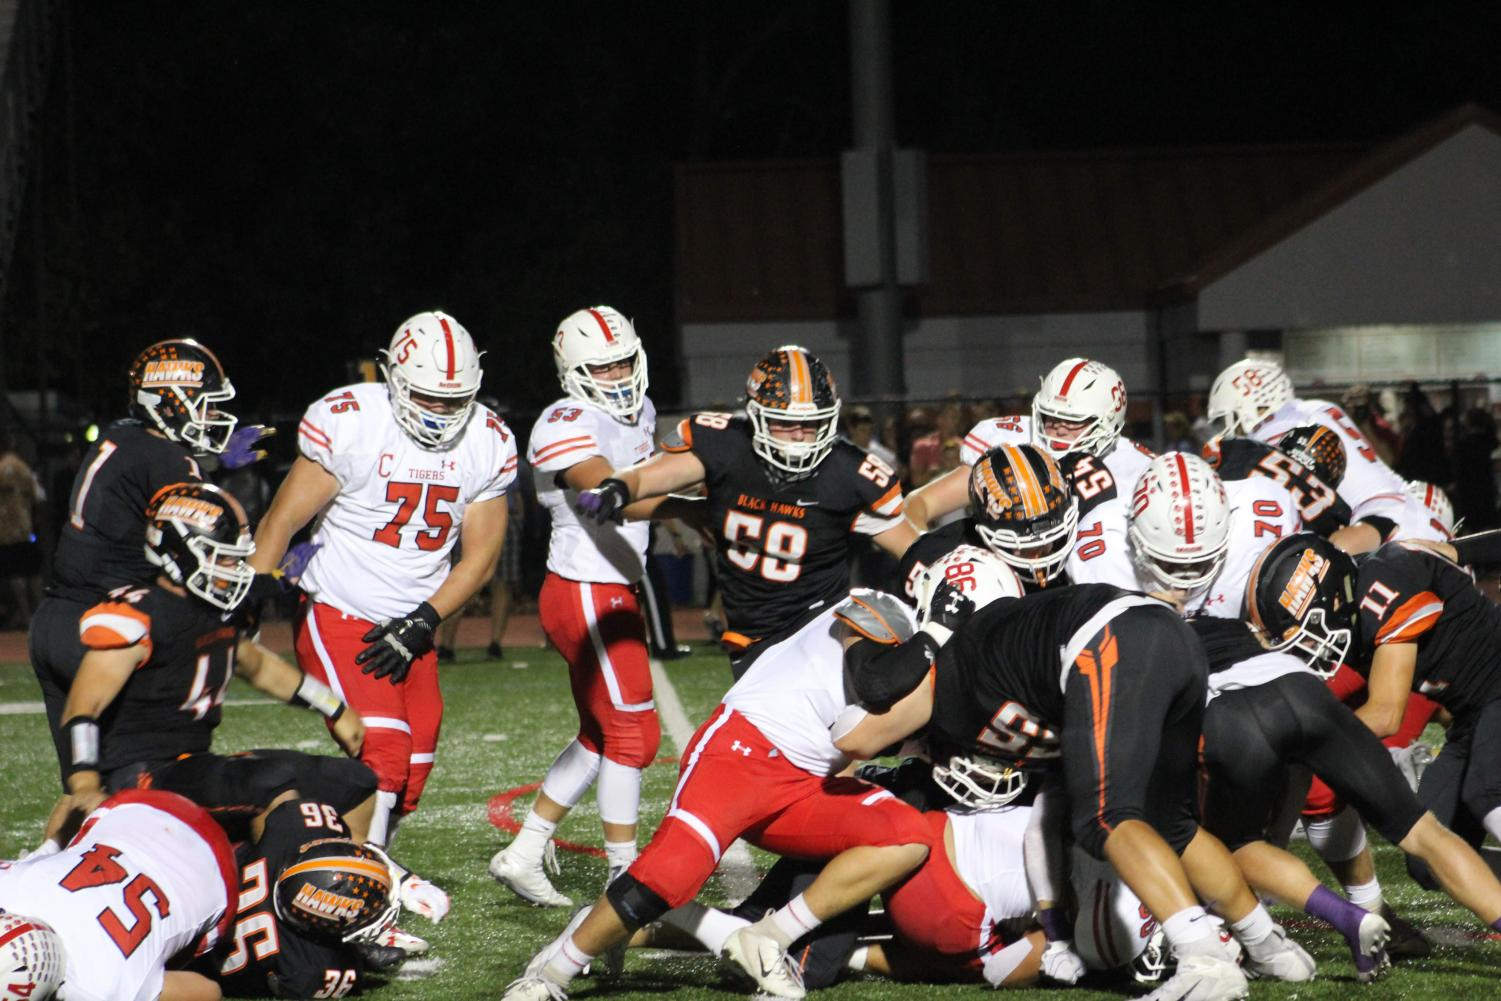 The Hawks tangle up with the Tigers on Friday, Sept. 27.